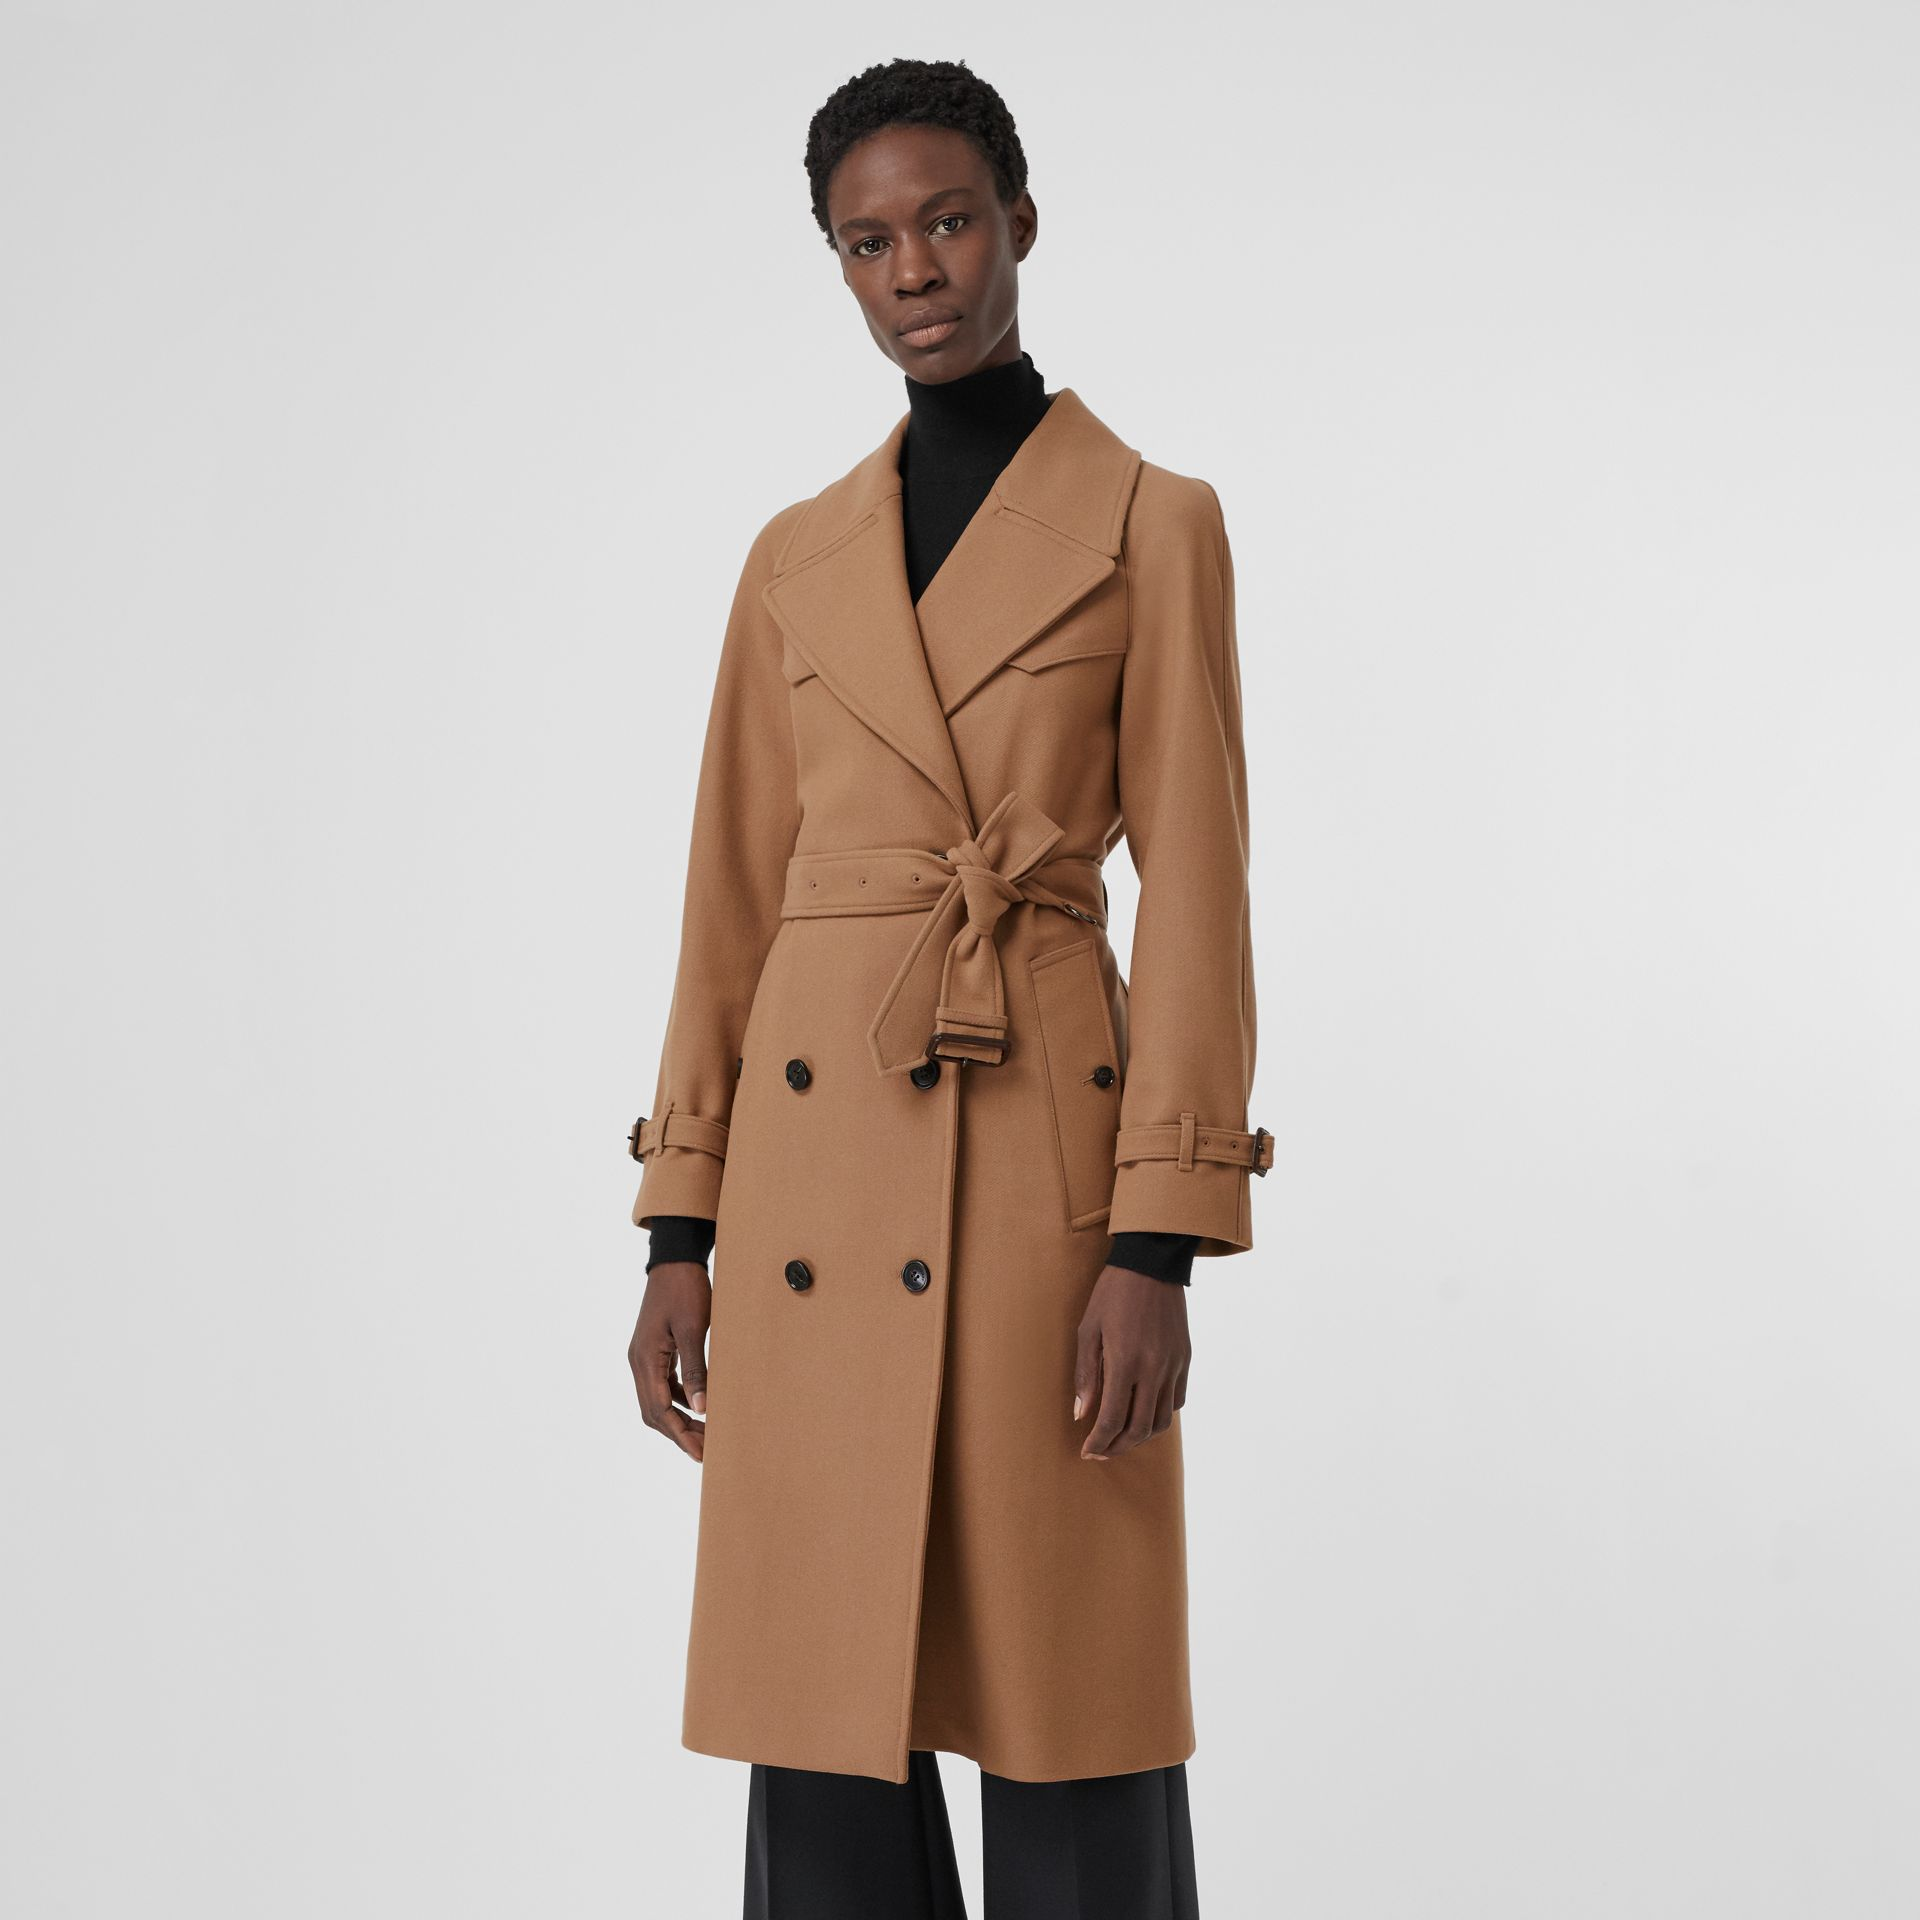 Herringbone Wool Cashmere Blend Trench Coat in Camel - Women | Burberry - gallery image 6